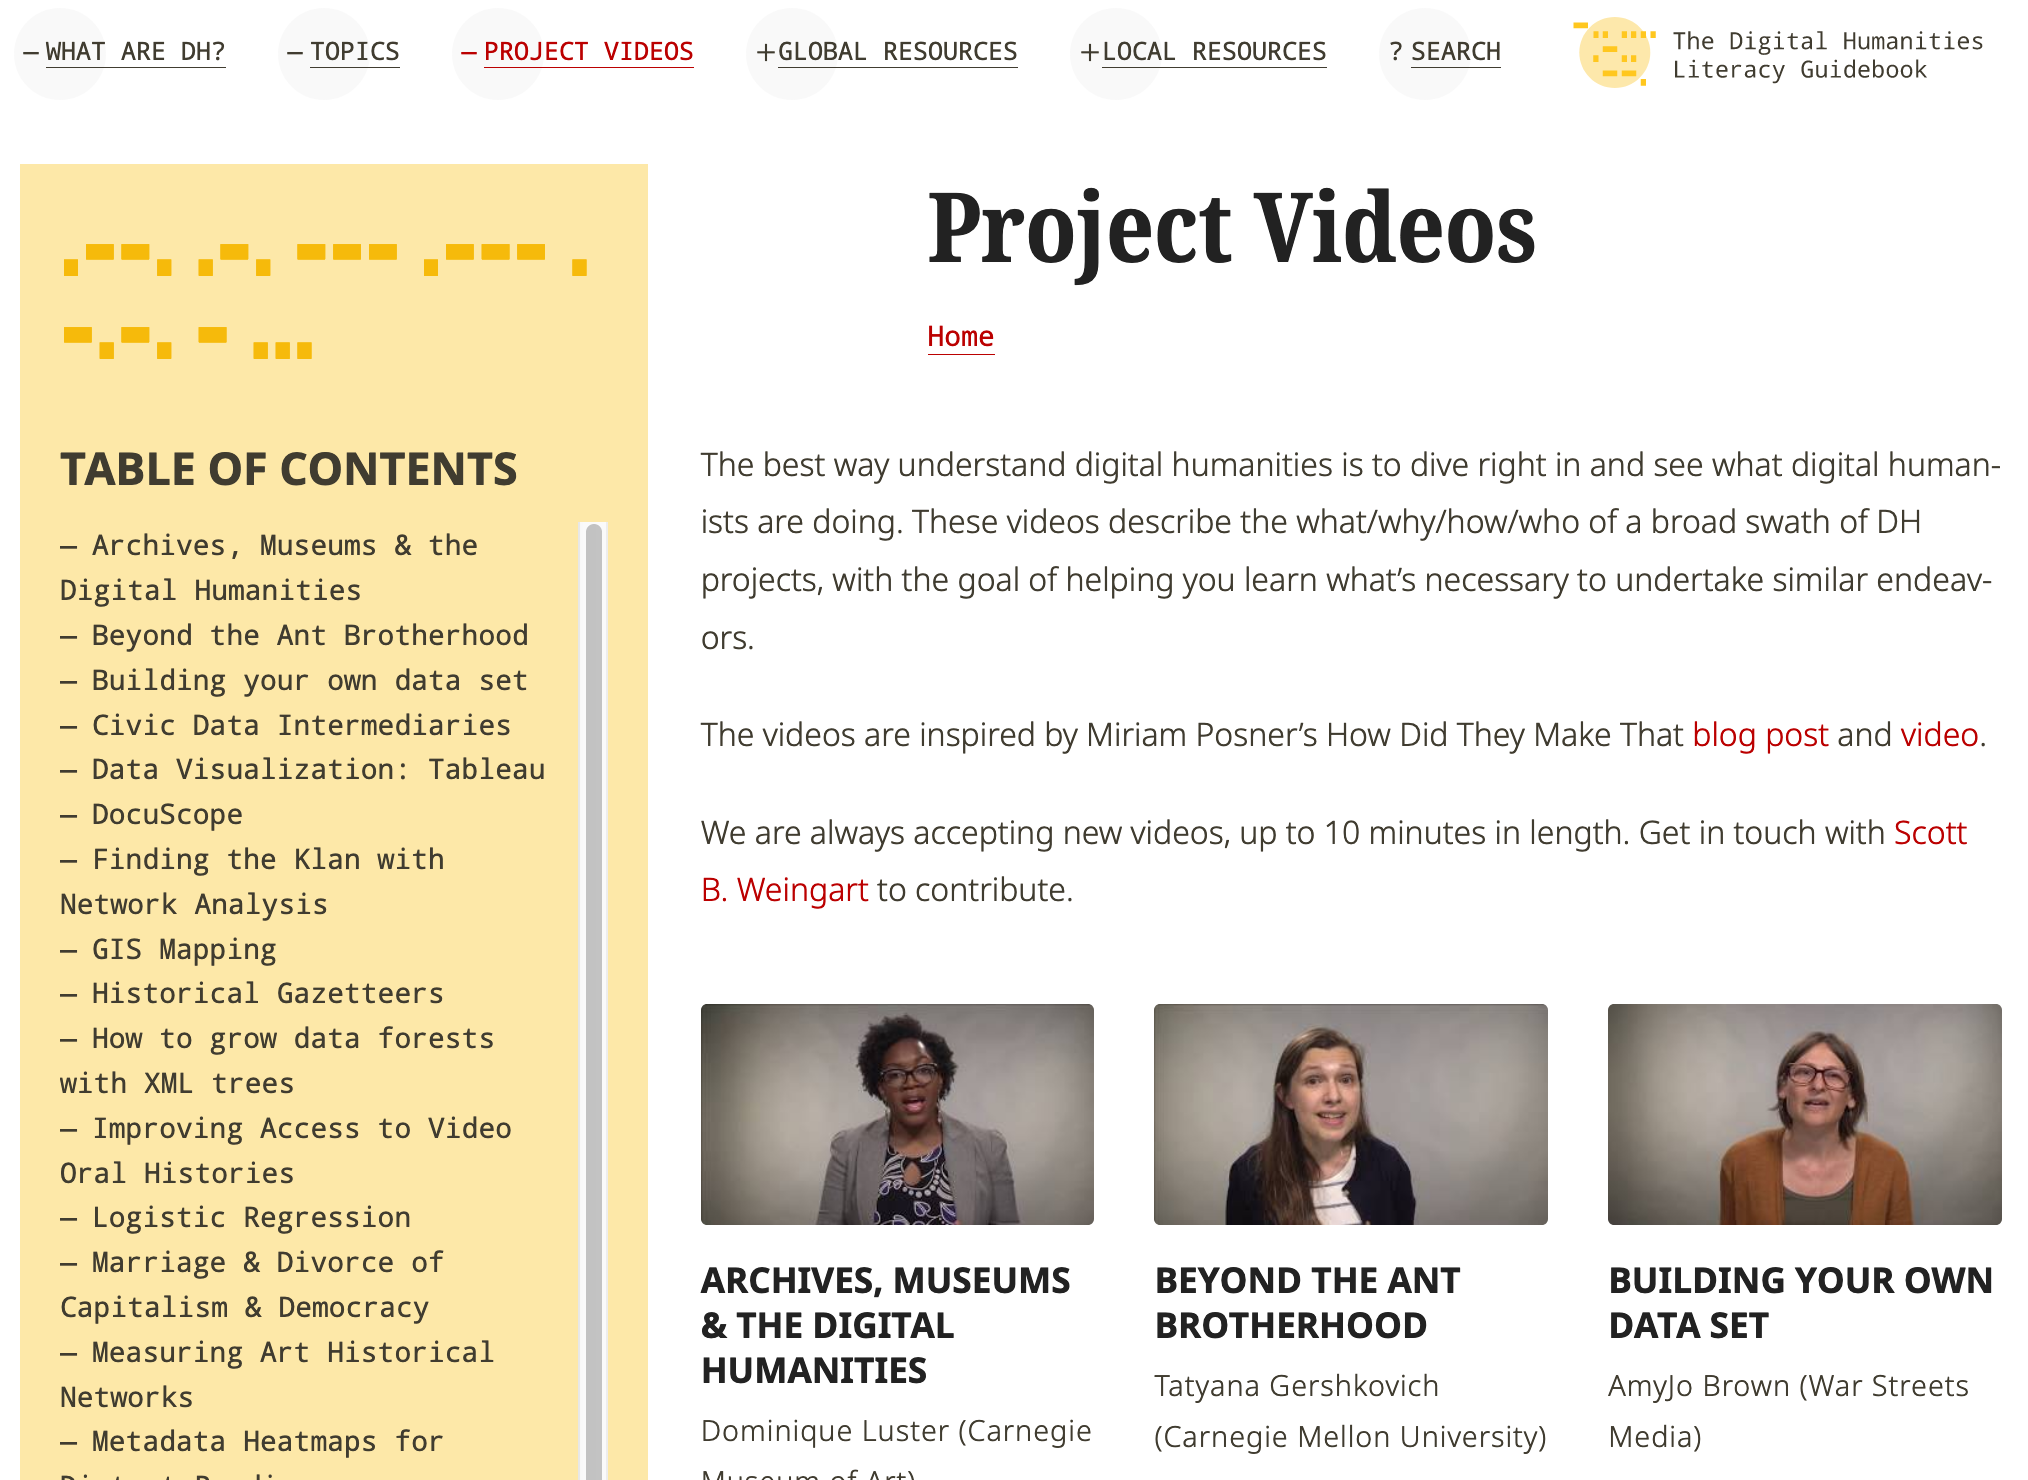 The project videos page of the Digital Humanities Literacy Guidebook